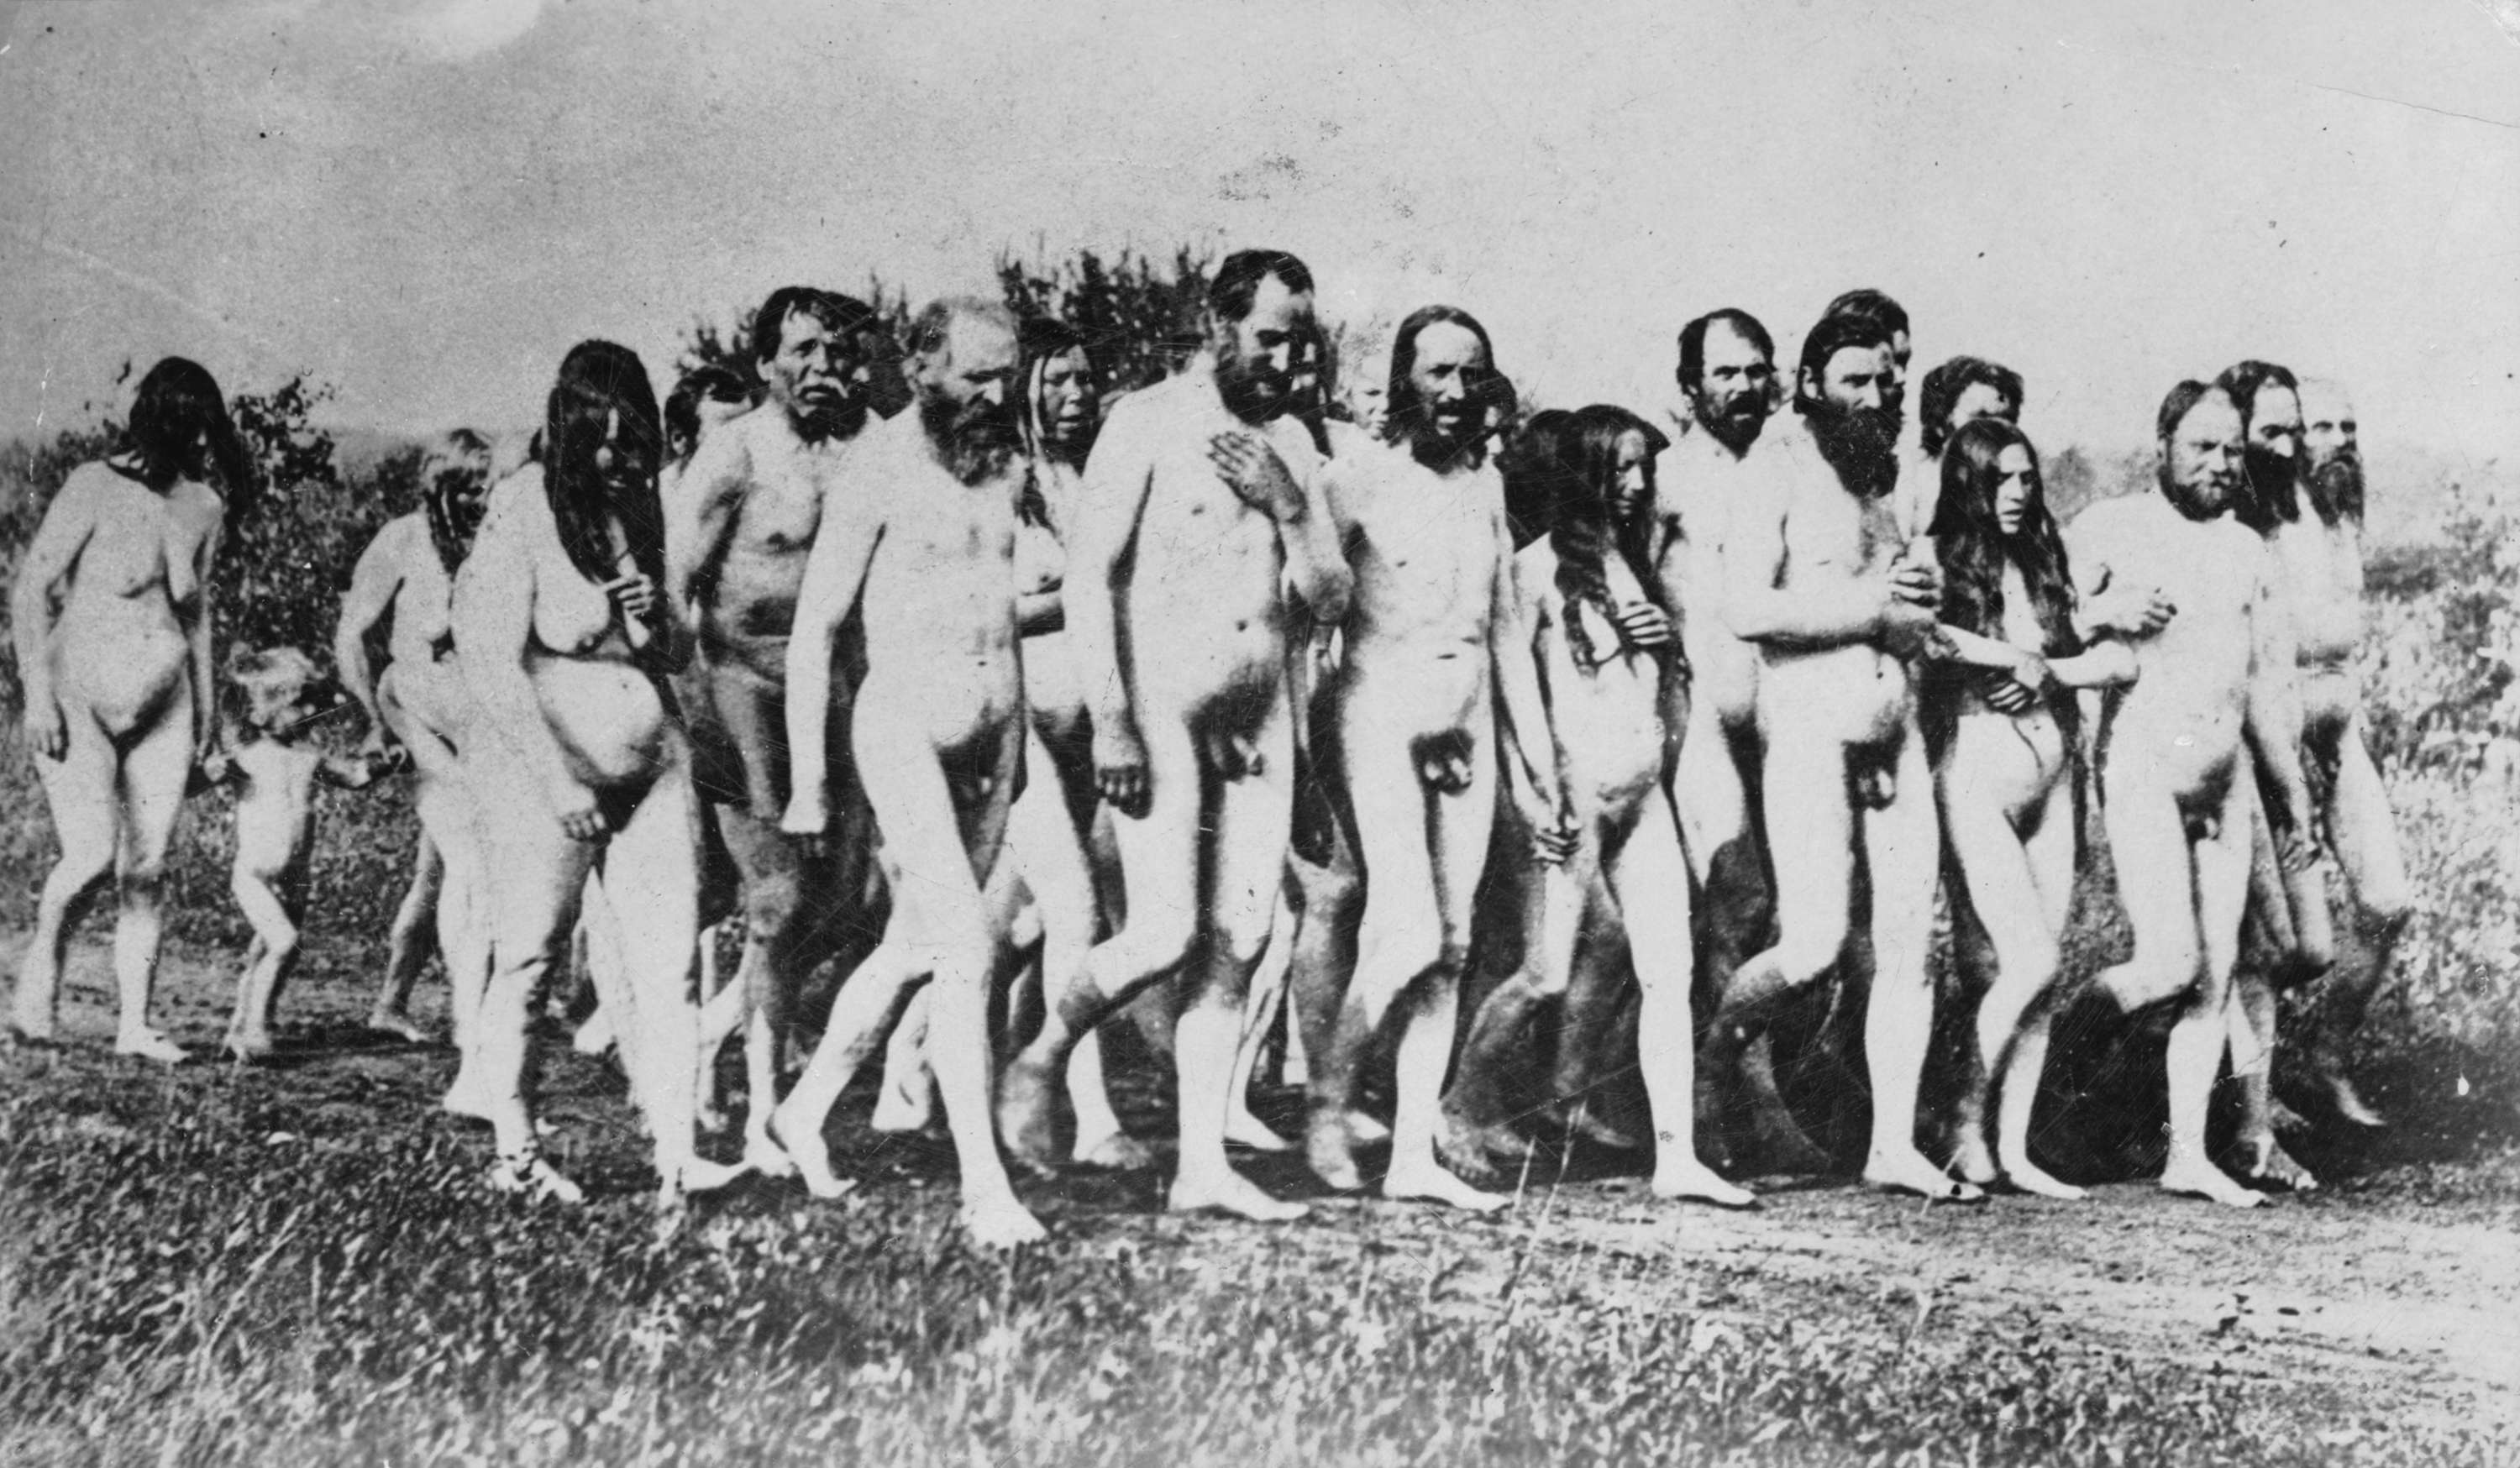 Group Of Nude Doukhobor Men, Women, And Children On A Dirt Road - City Of Vancouver -8268